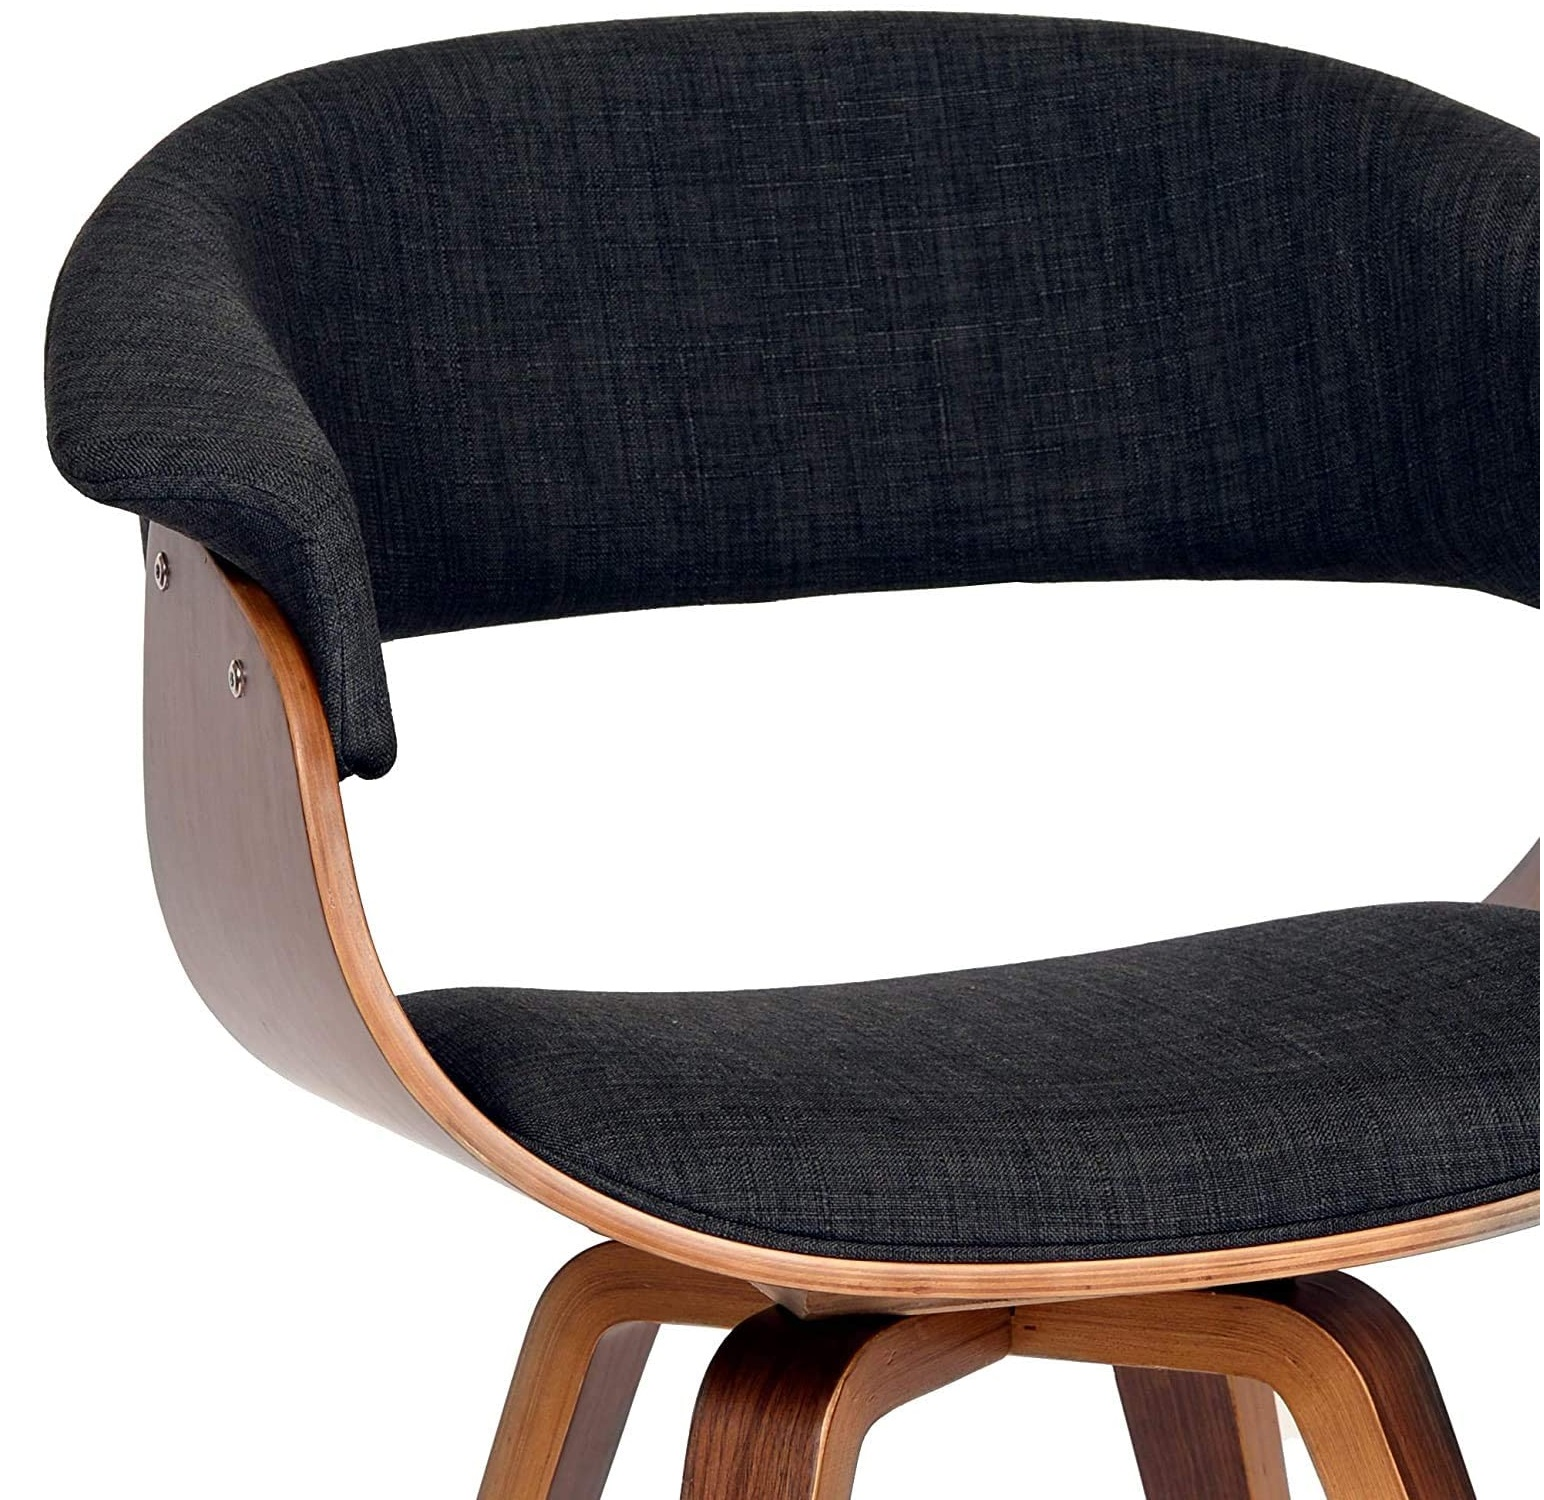 Best favorit on 2021 Mid-Century Armen Minimalist livingroom contemporary Chair with charcoal fabric and Walnut wood finish 1